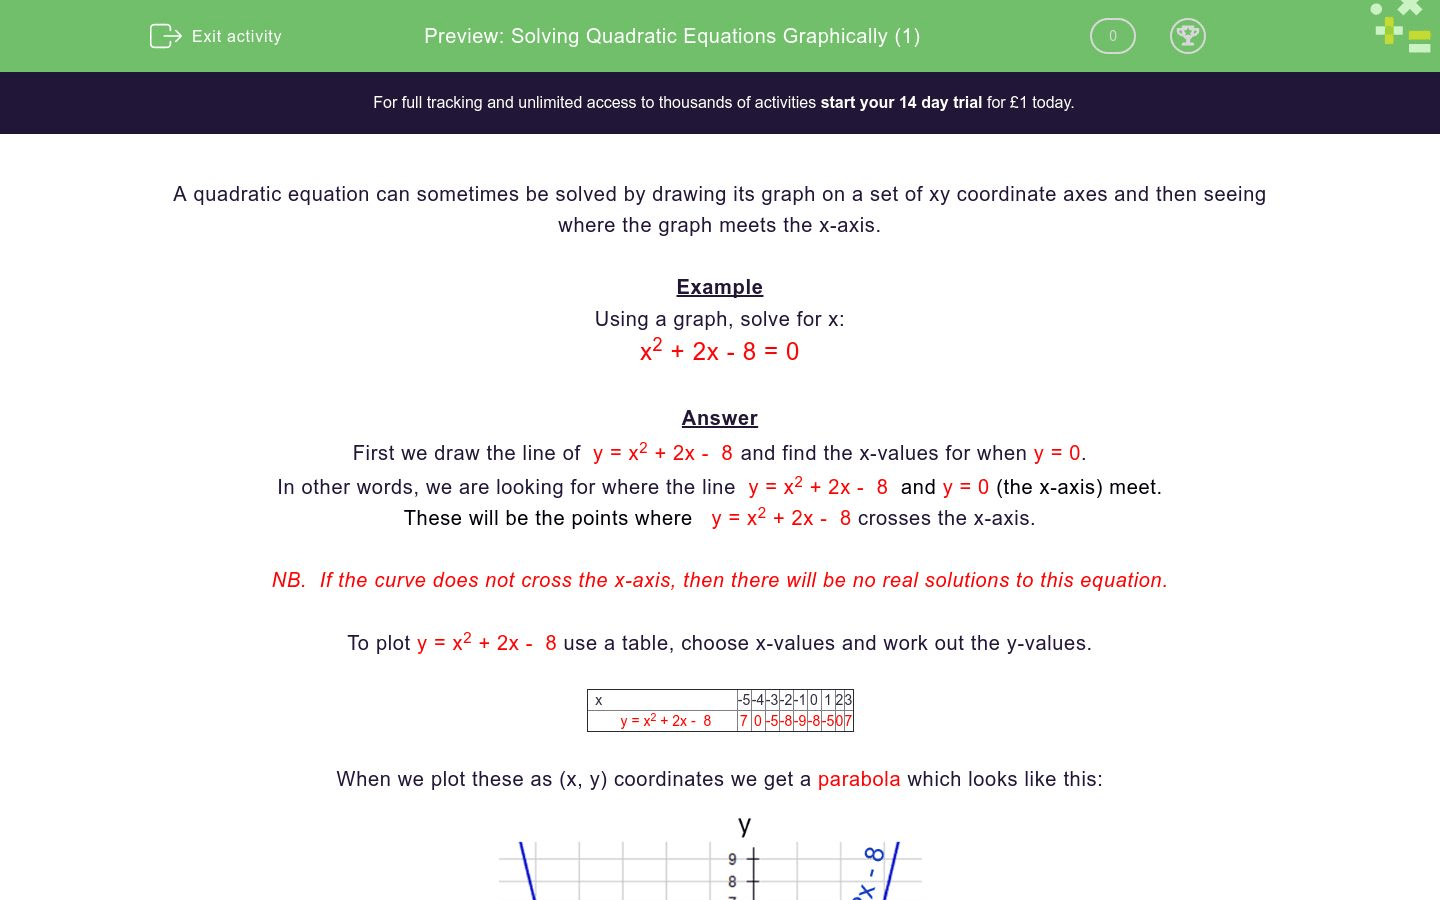 Solving Quadratic Equations Graphically 1 Worksheet